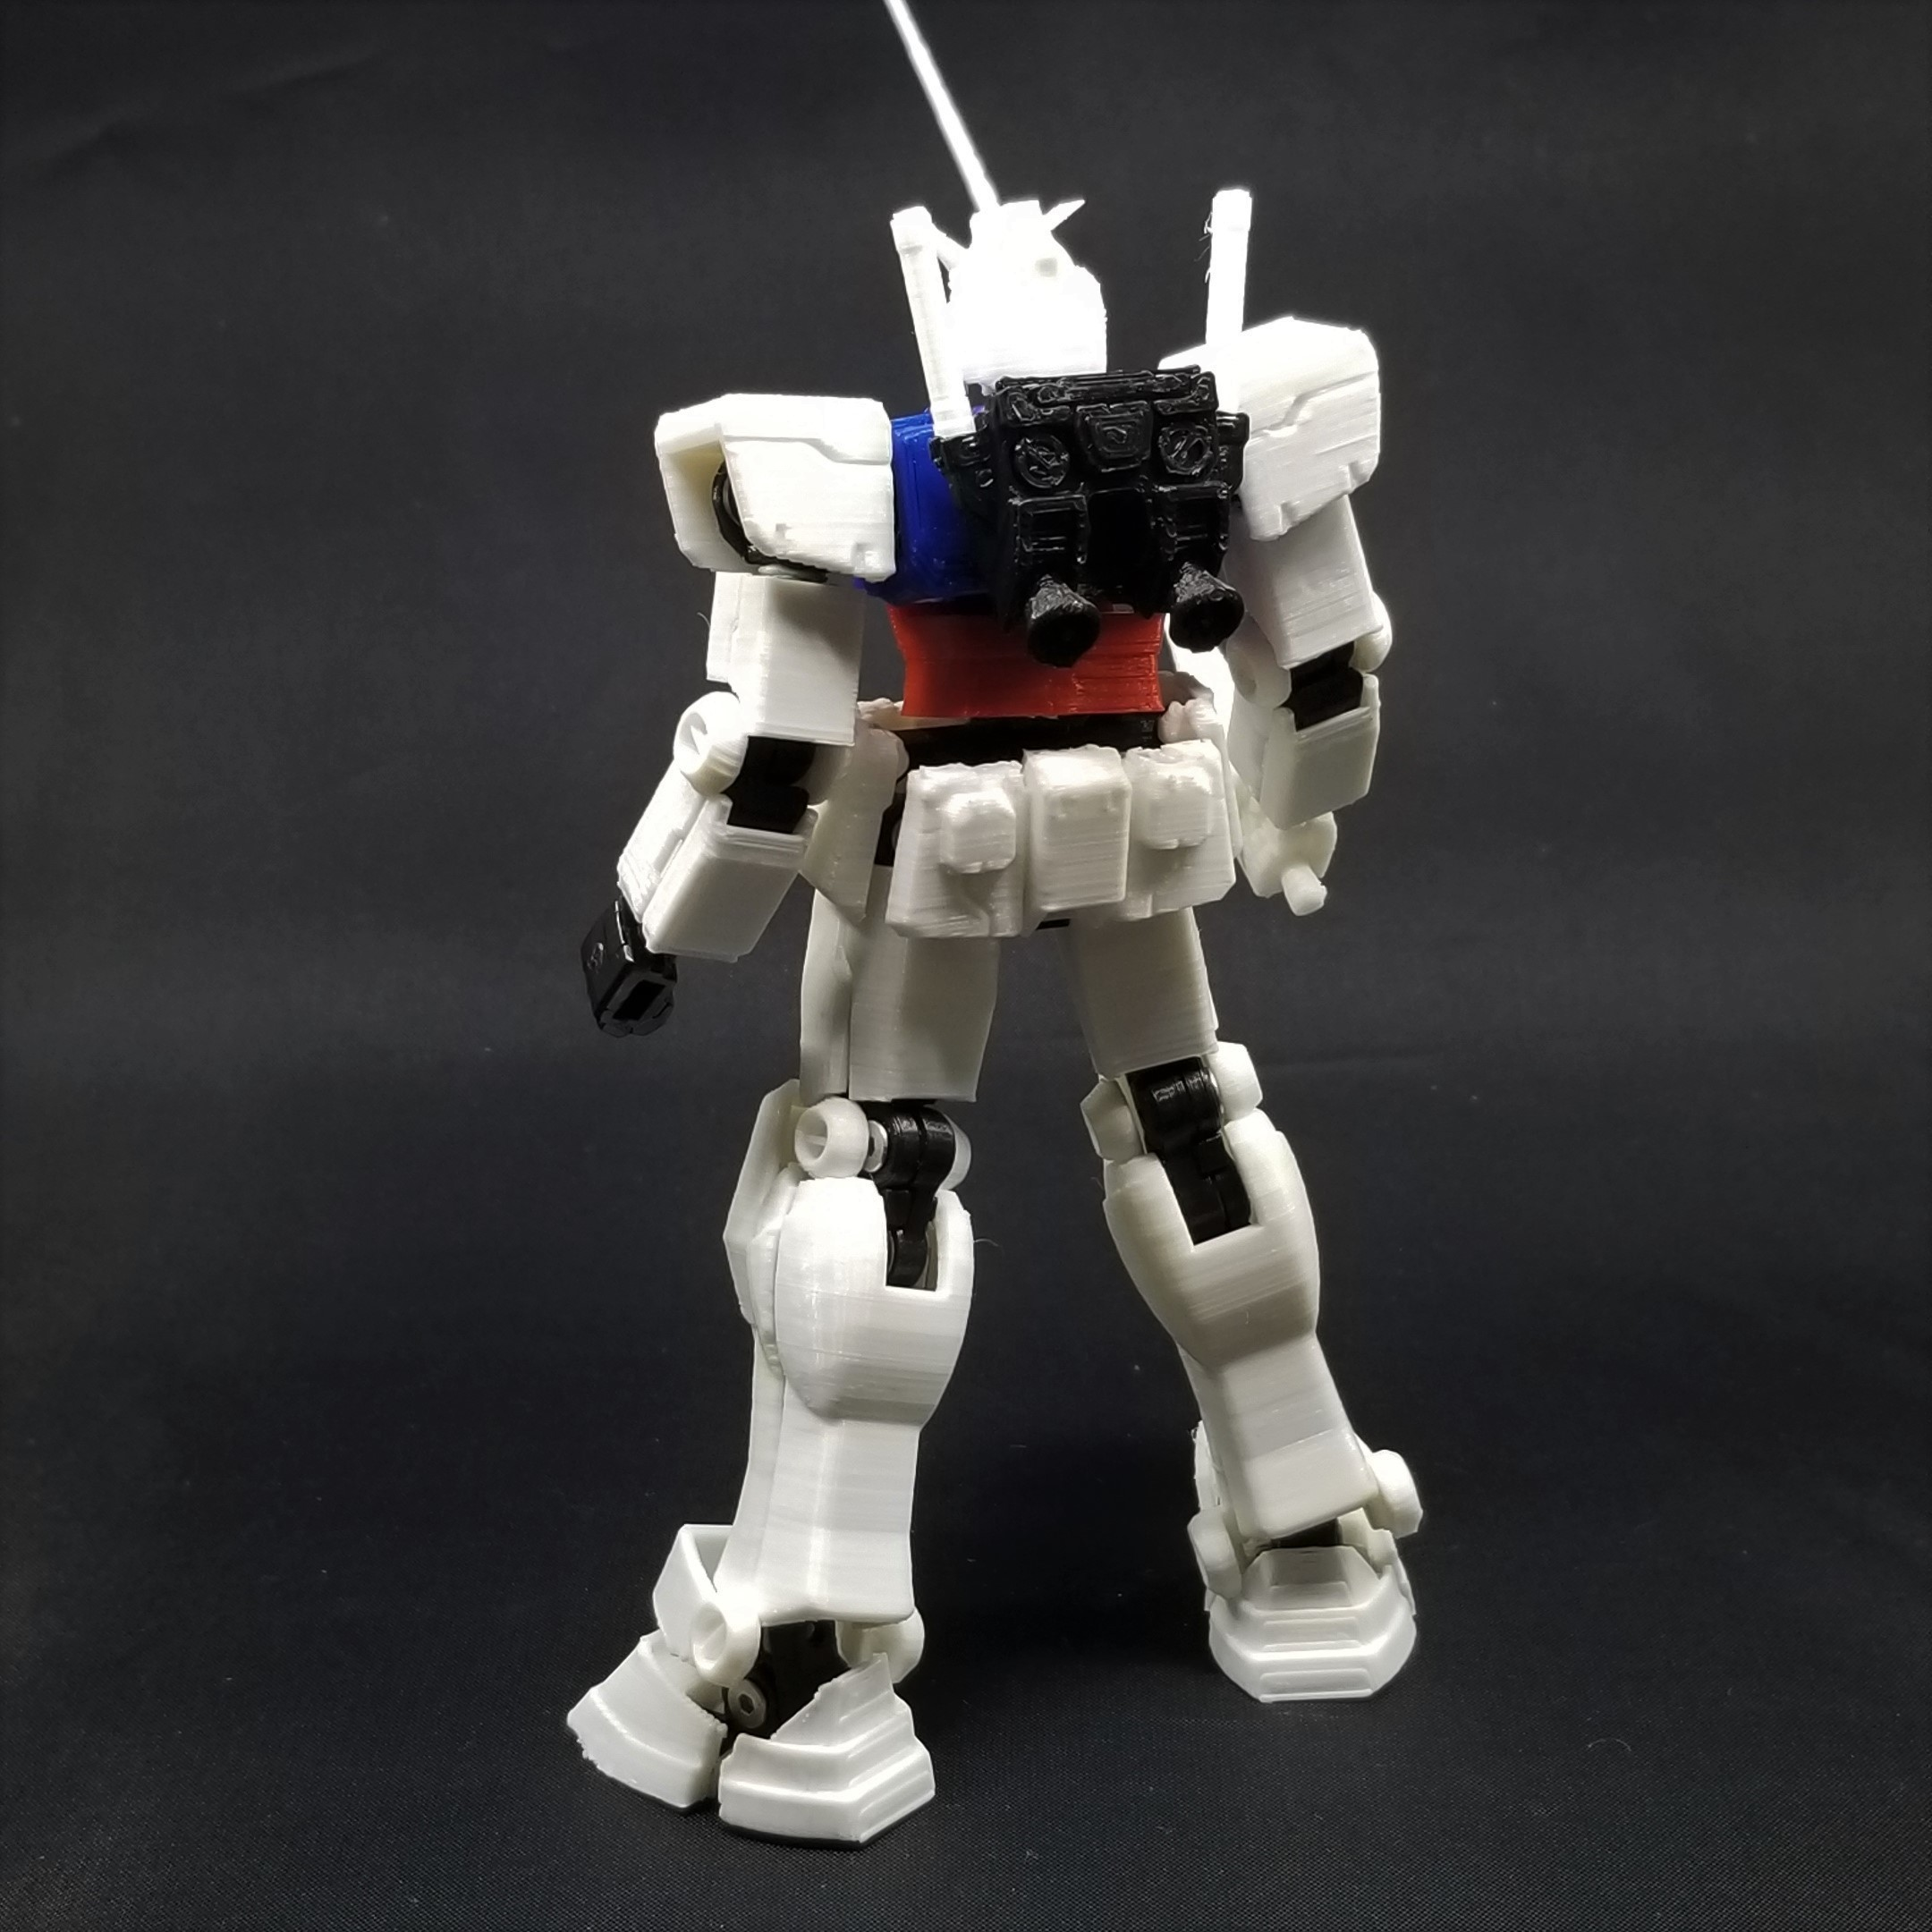 2020-11-09 22.20.27.jpg Download STL file X-Frame Armor #1 (inspired by RX-78-2 Gundam) • 3D print model, chiz-m